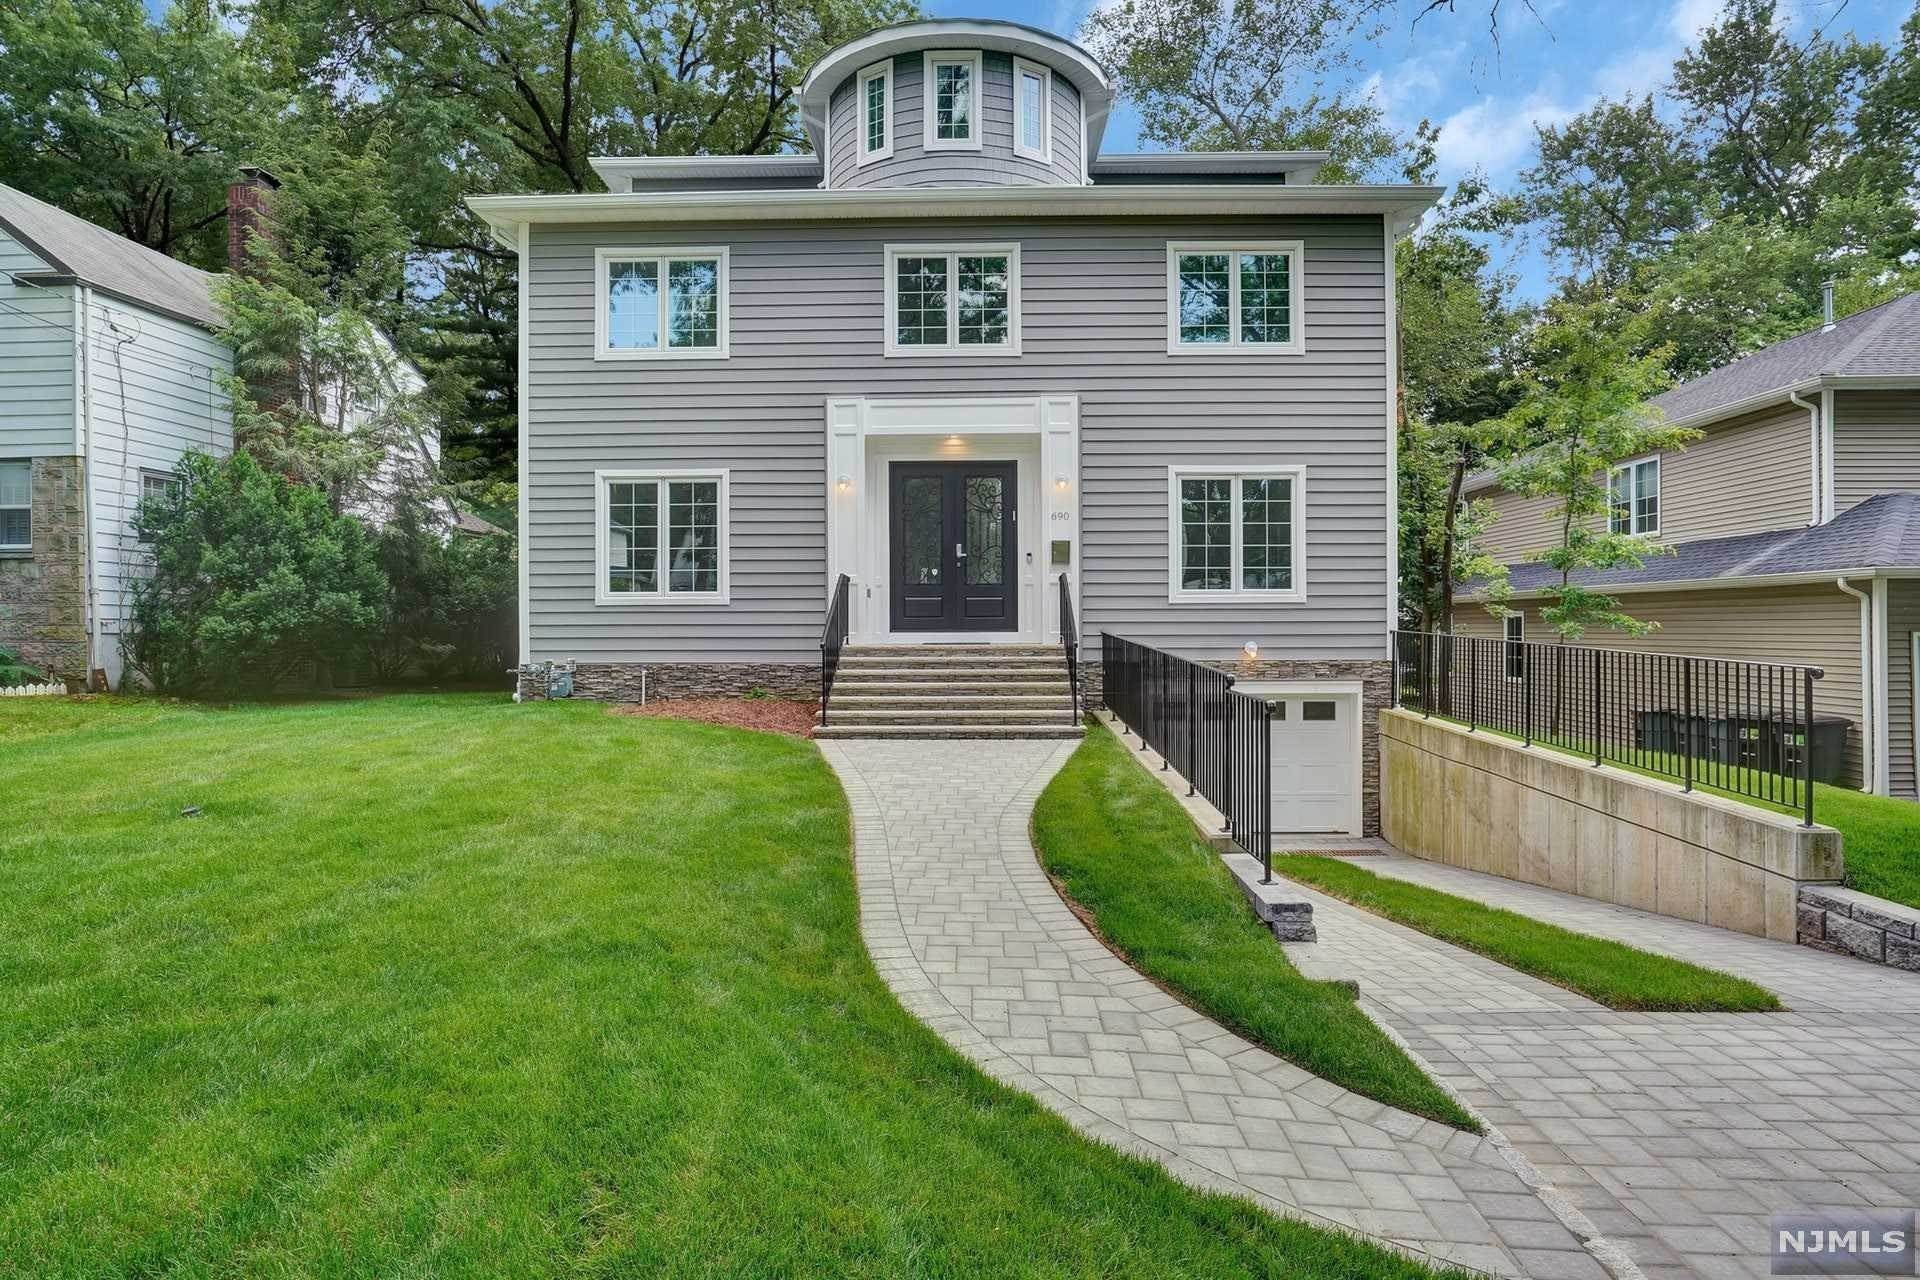 Single Family Home for Sale at 690 Forest Avenue Teaneck, New Jersey, 07666 United States